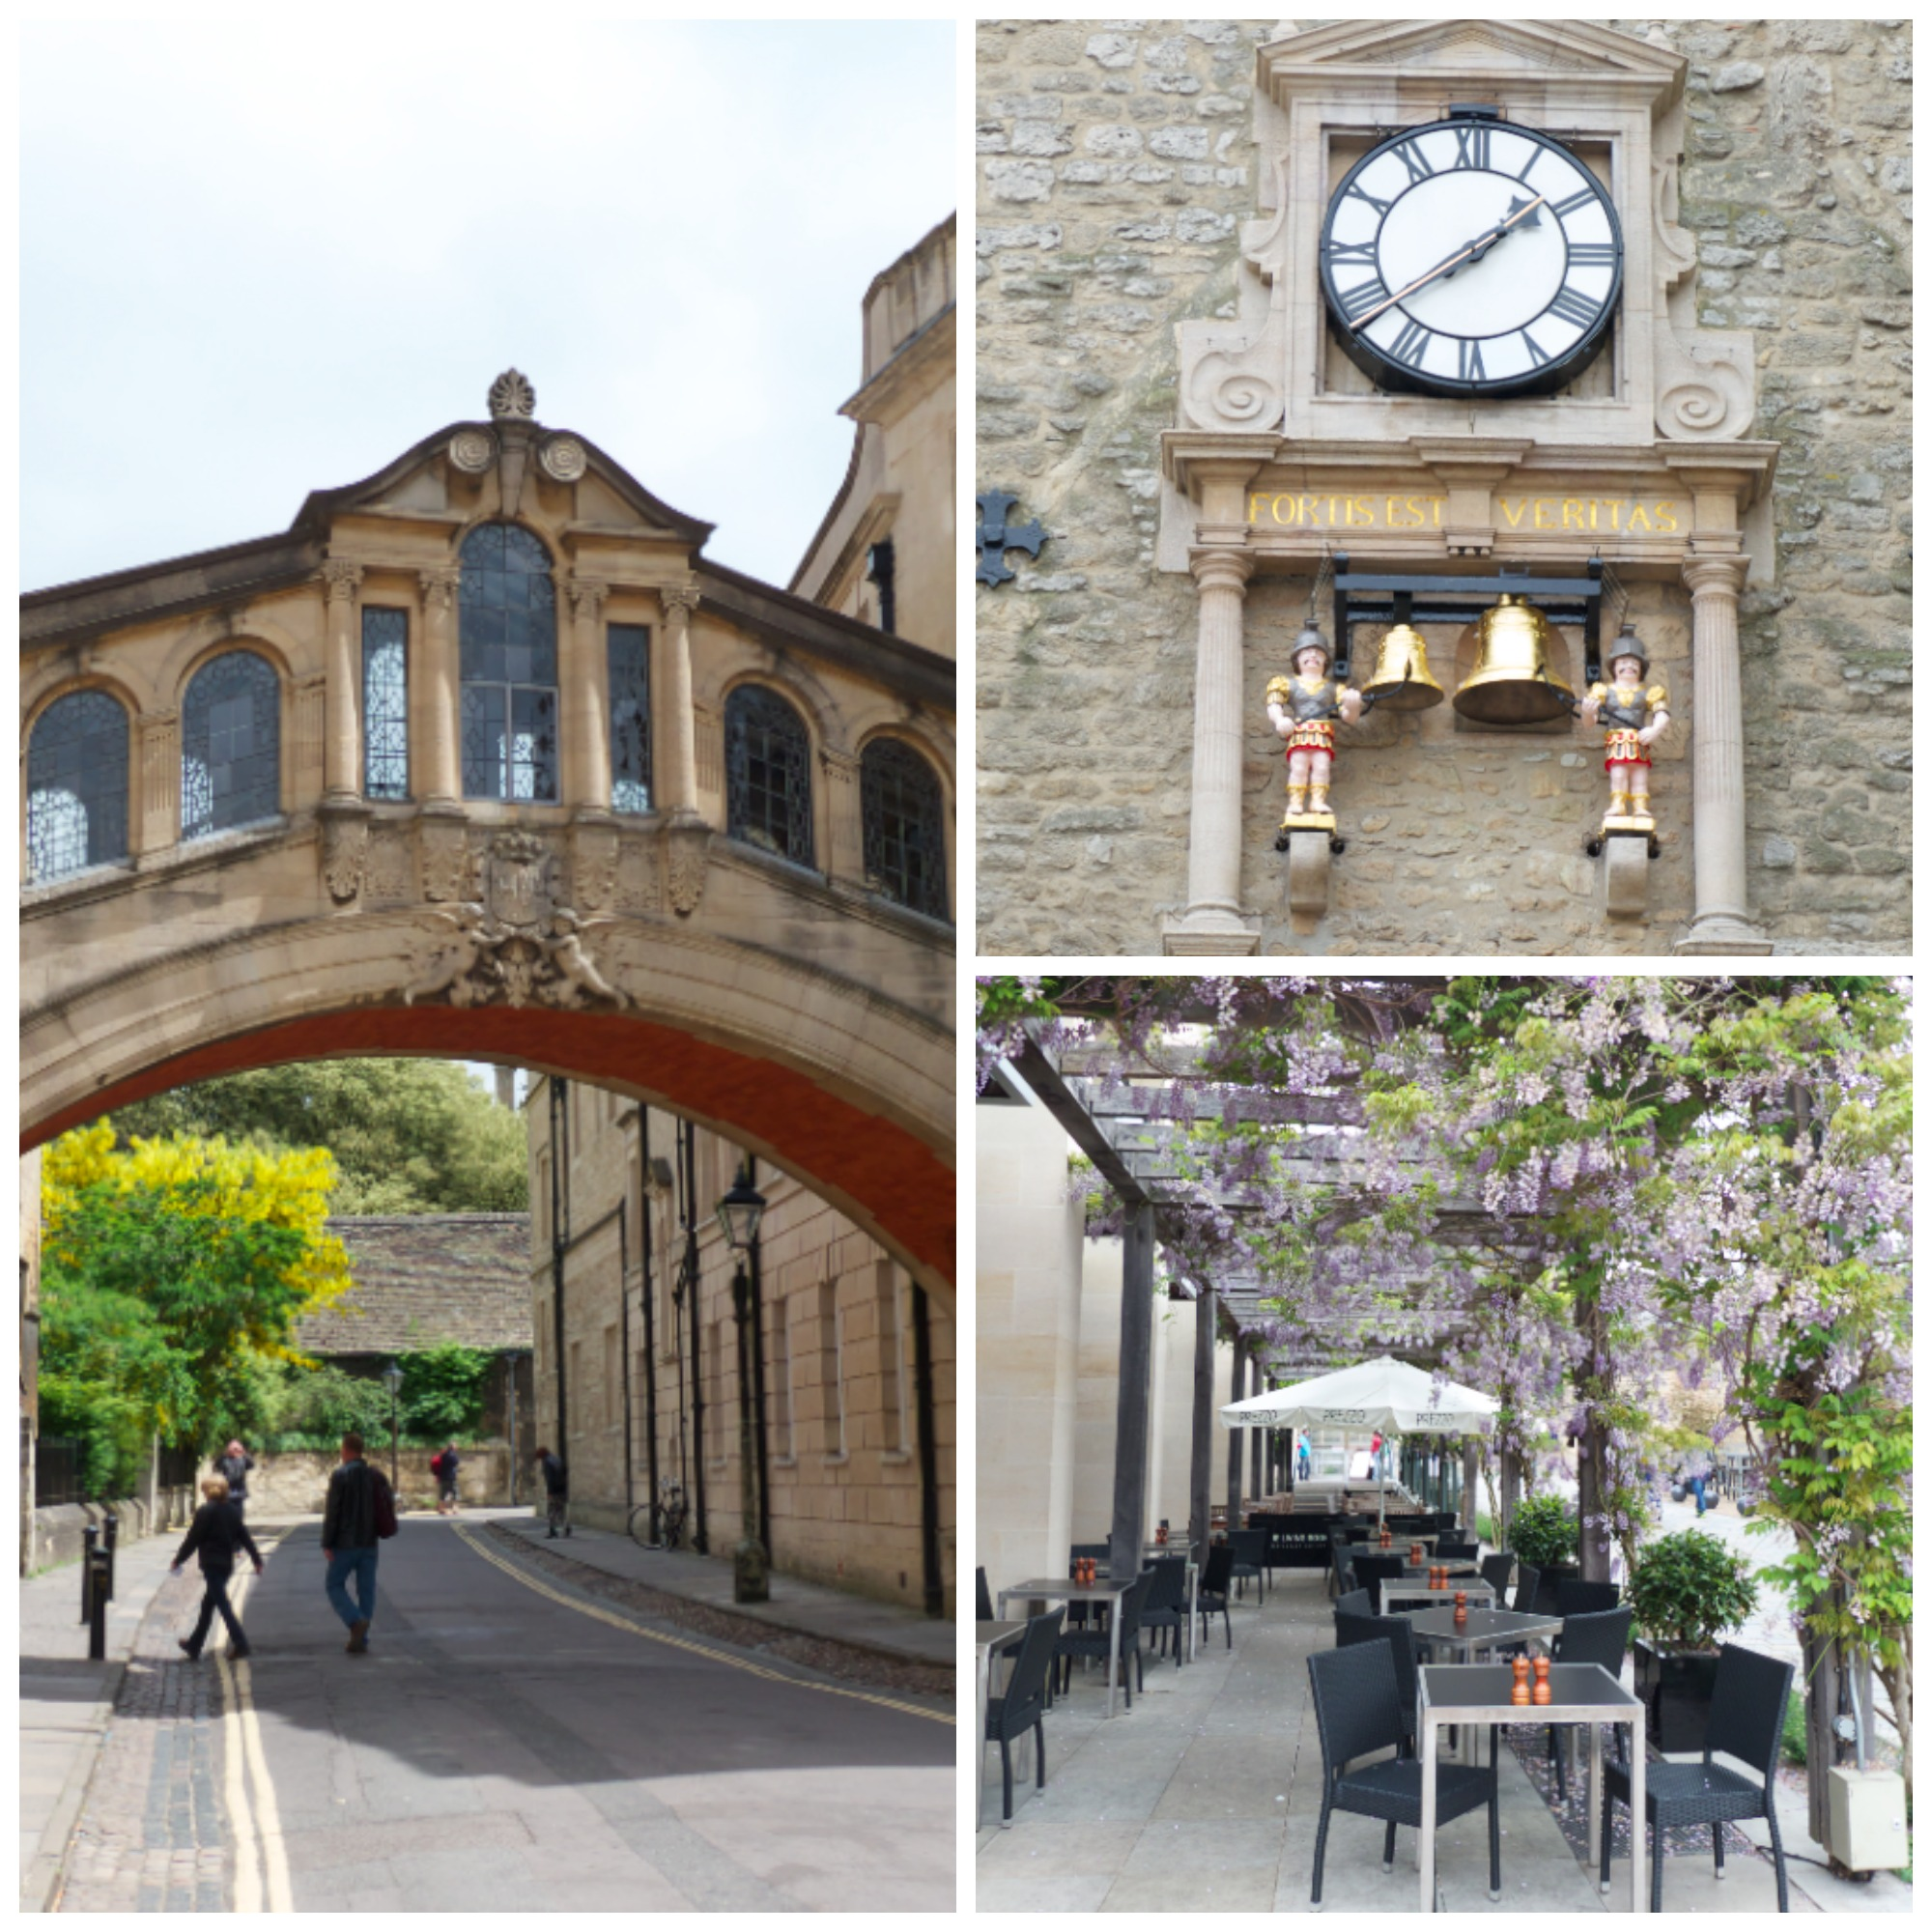 Oxford A Town Famous For Its University Has Now Made It To My Top 10 List Of Favourite Cities I Love Walking Around Admiring The Architecture